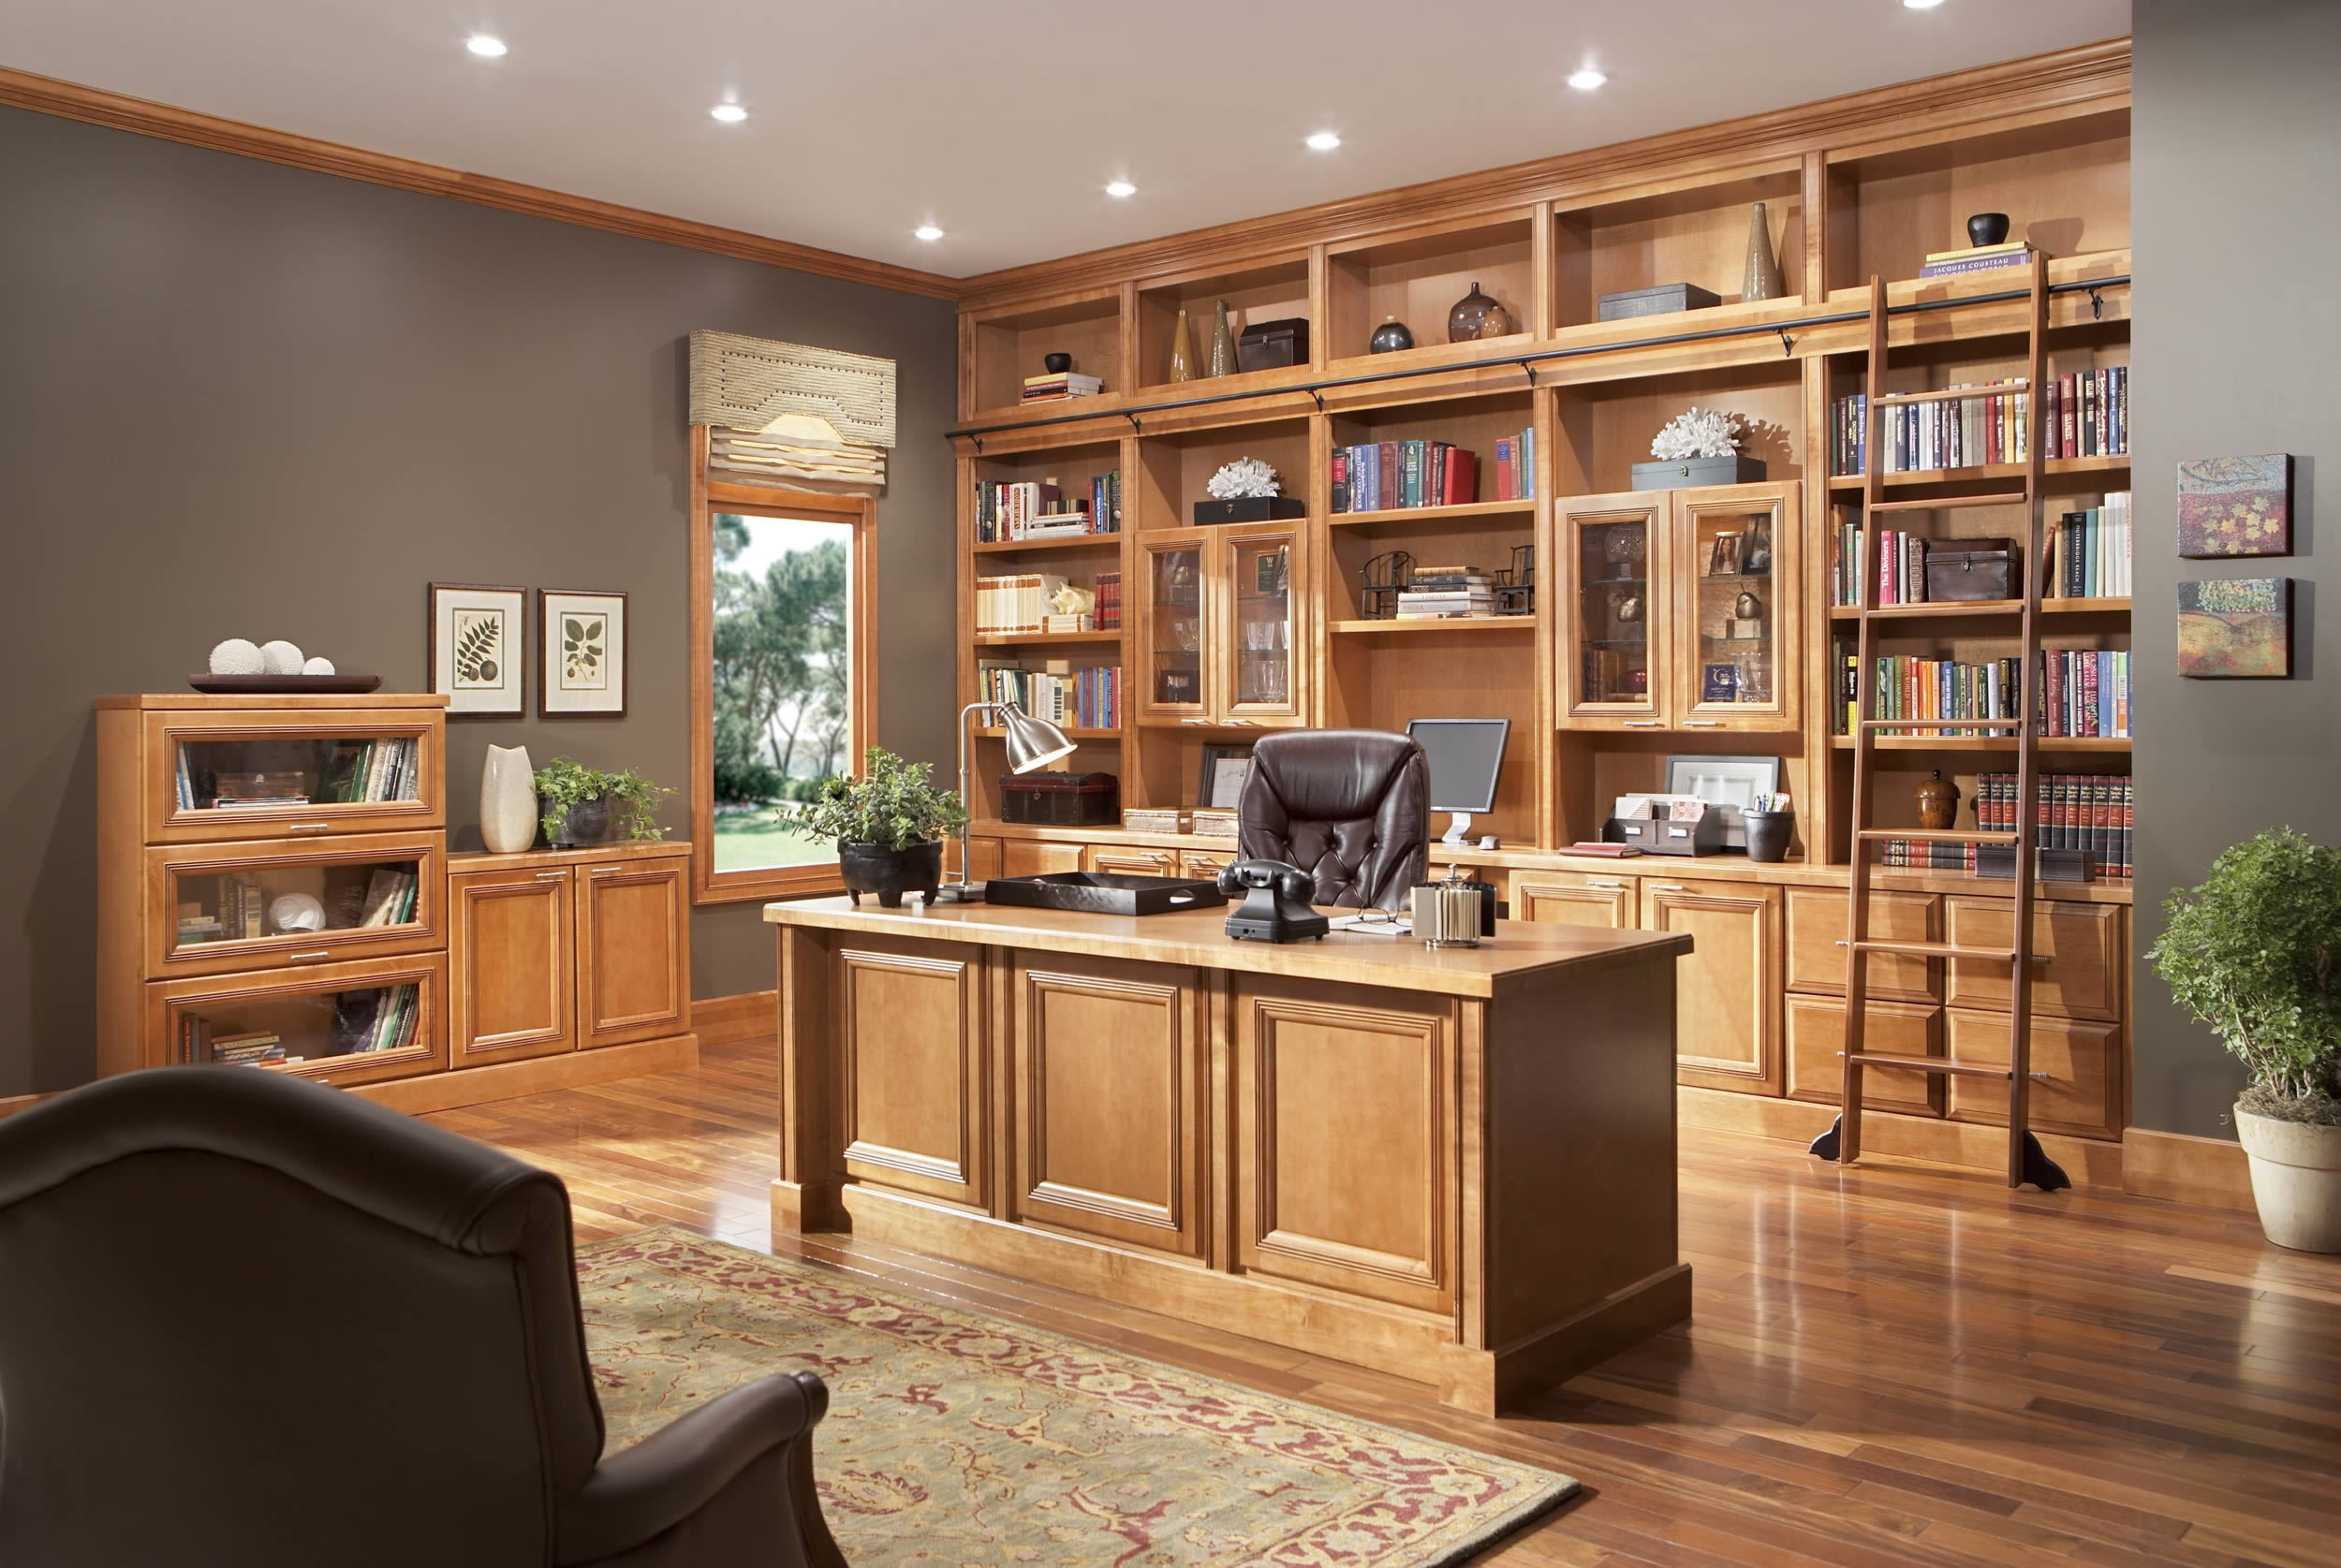 Home Office Kitchen Cabinets